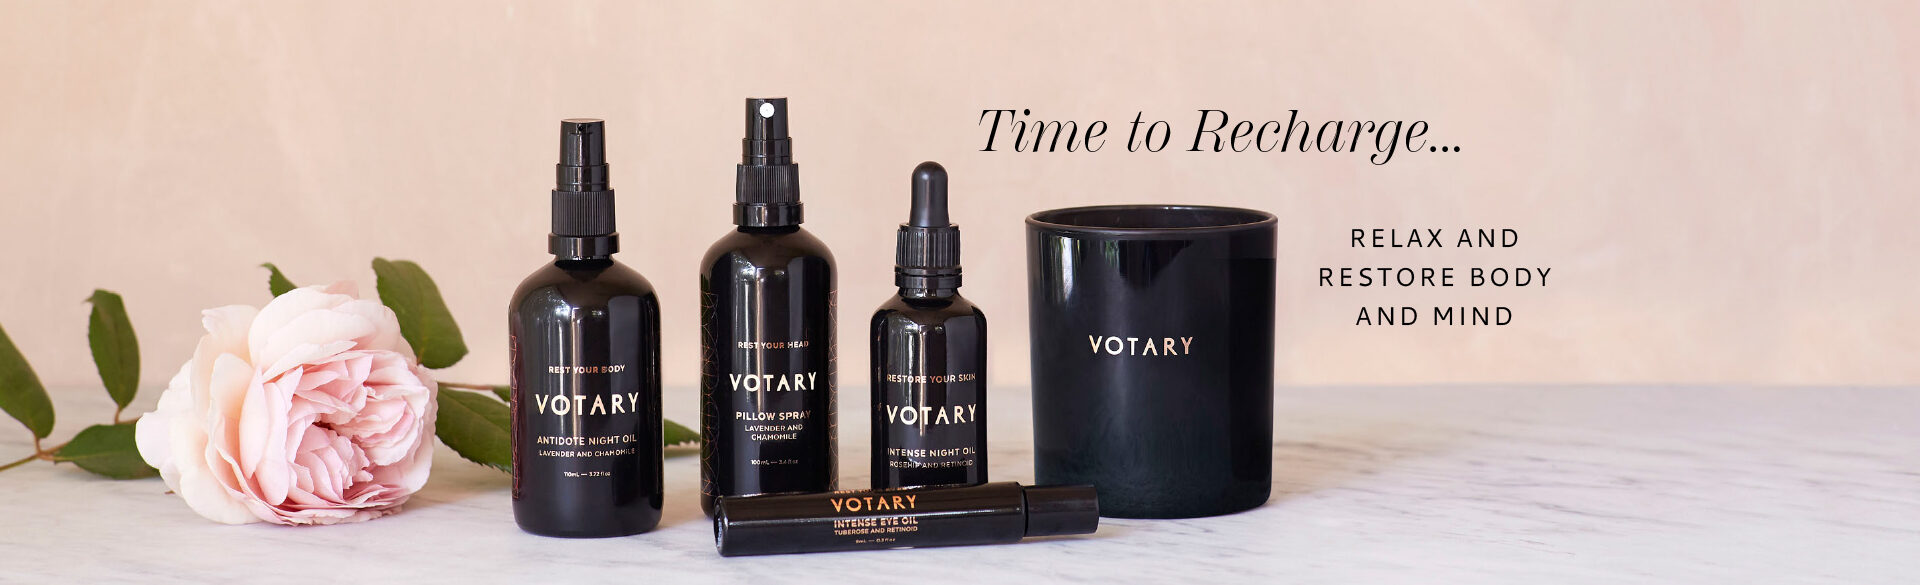 Time to Recharge with VOTARY aromatherapy oils